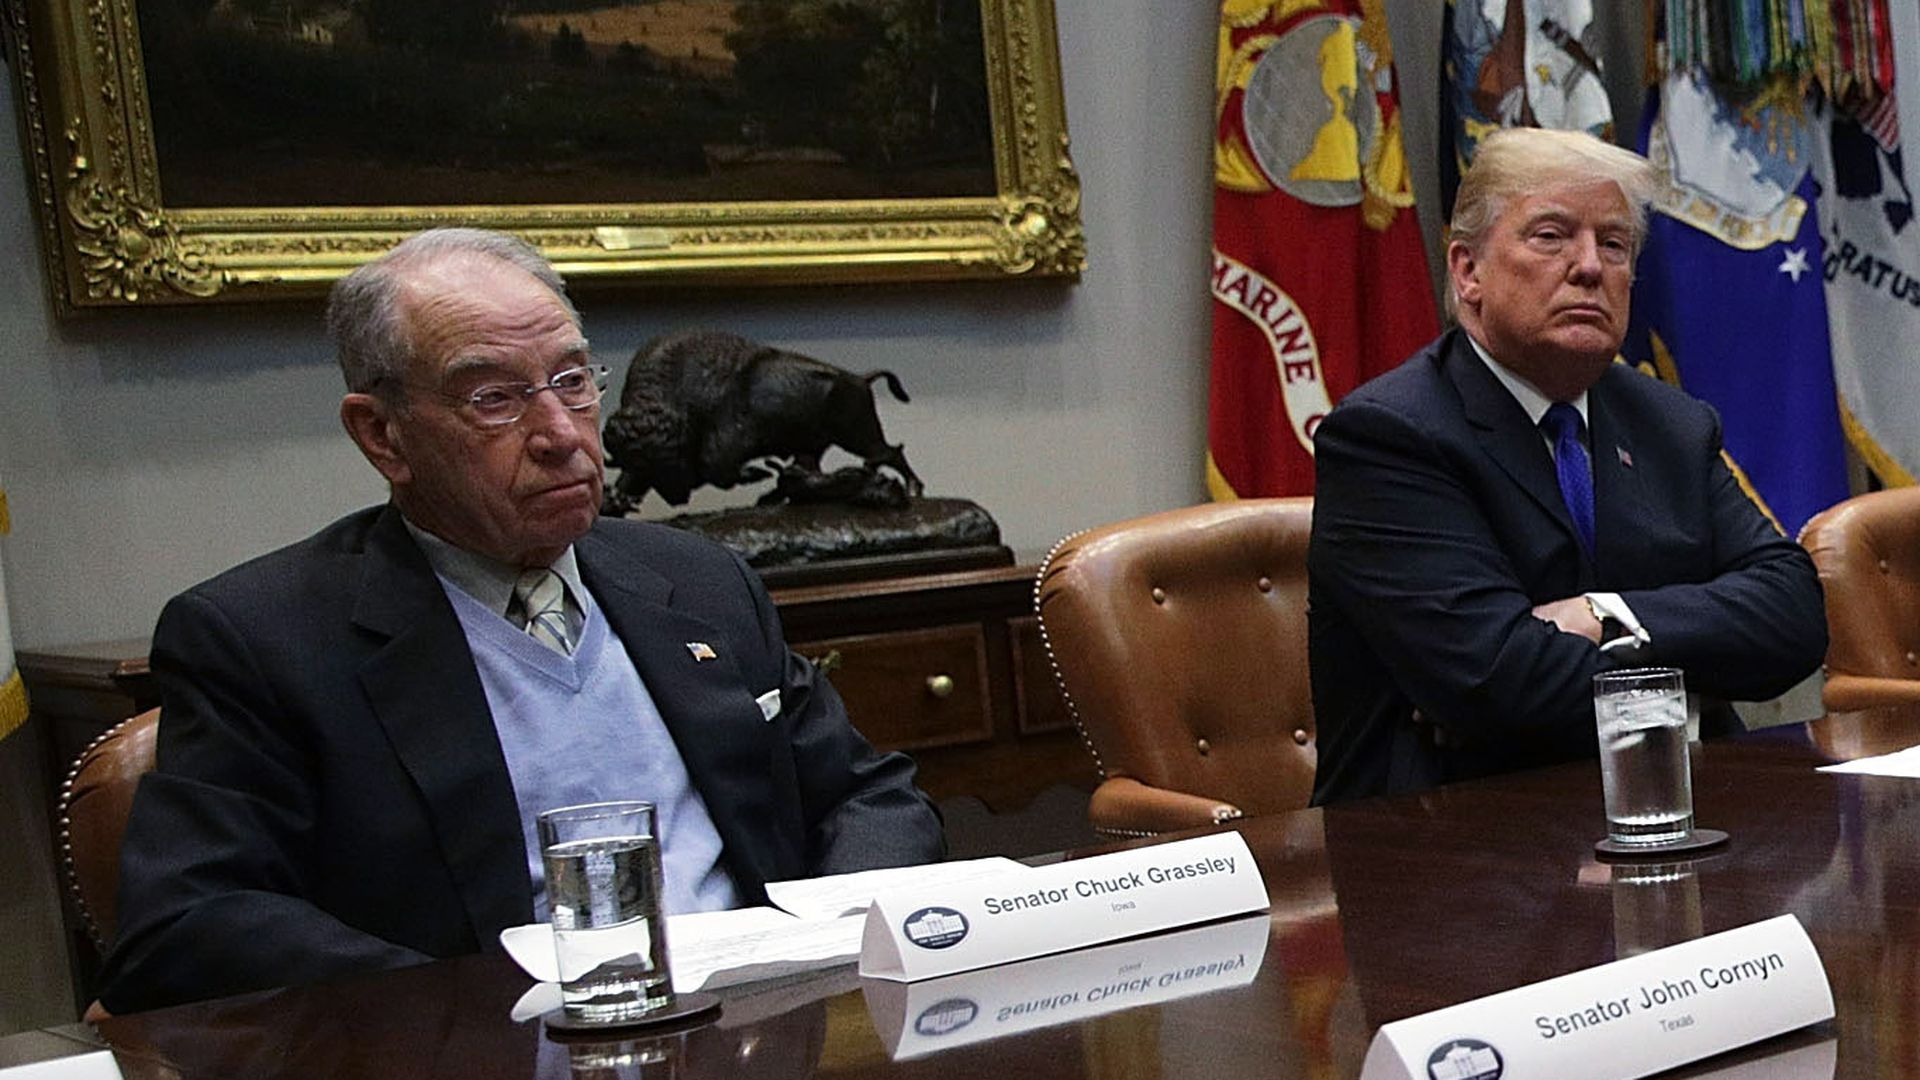 Donald Trump and Chuck Grassley seated next to each other.